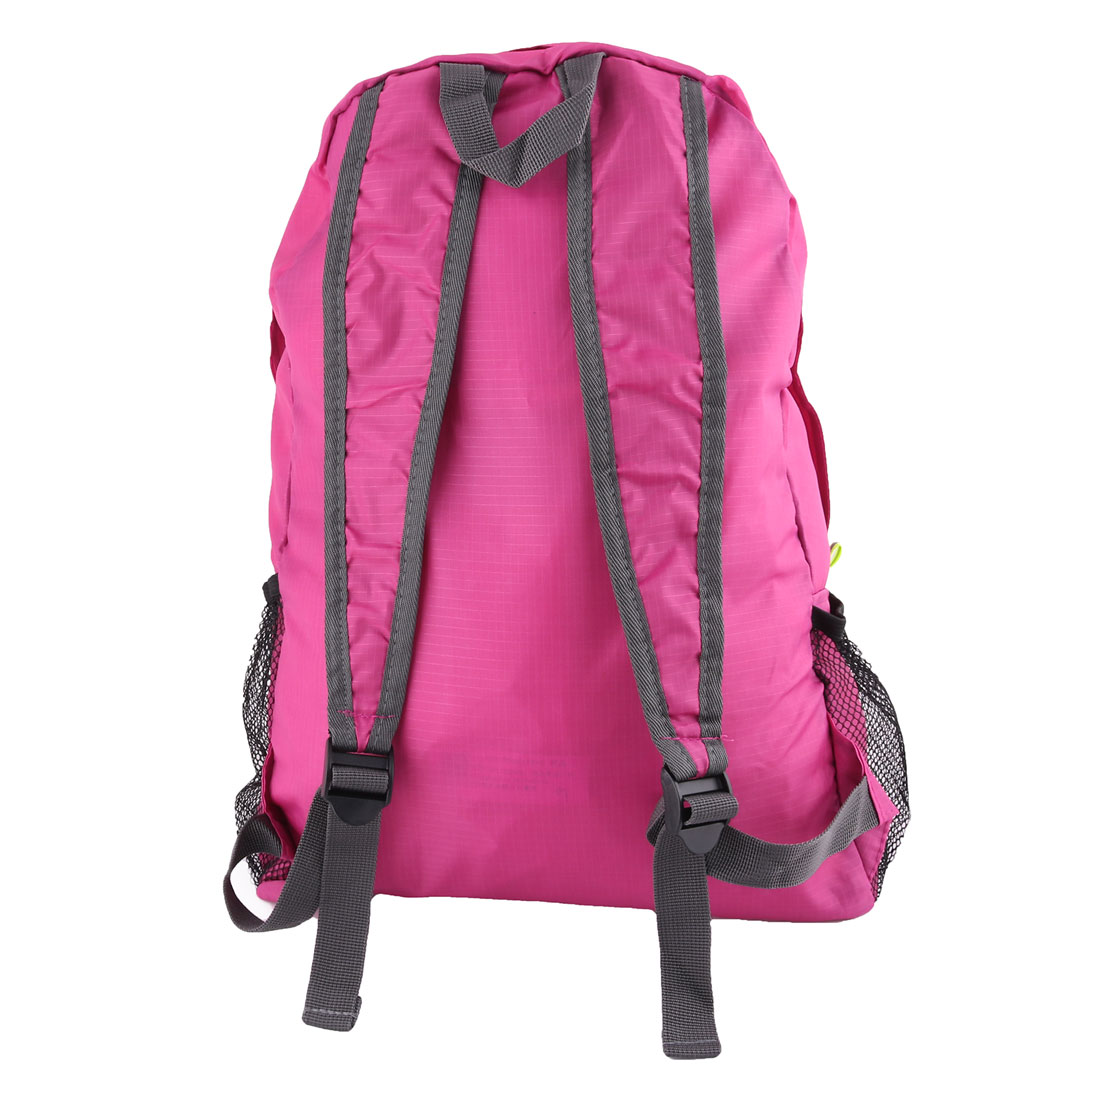 14abb39155 Unique Bargains Outdoor Travel Nylon Water Resistant Clothes Storage Bag  Backpack Fuchsia